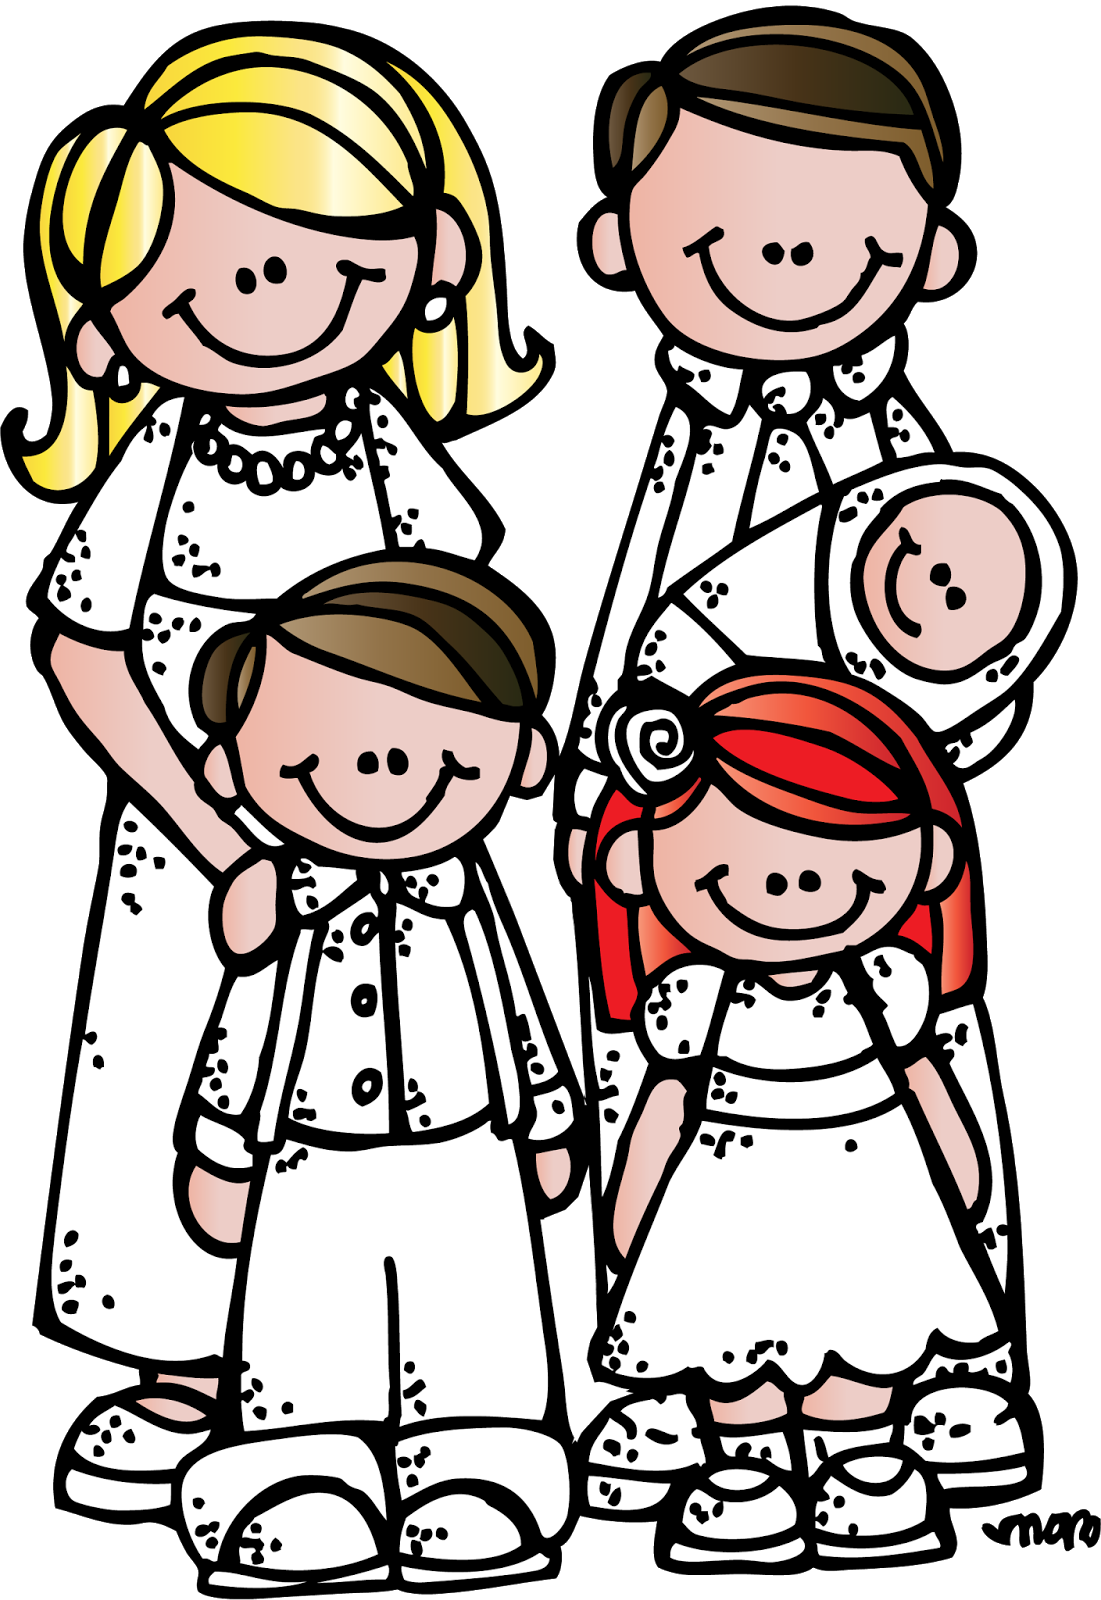 Lds clipart children's. Family new jokingart com